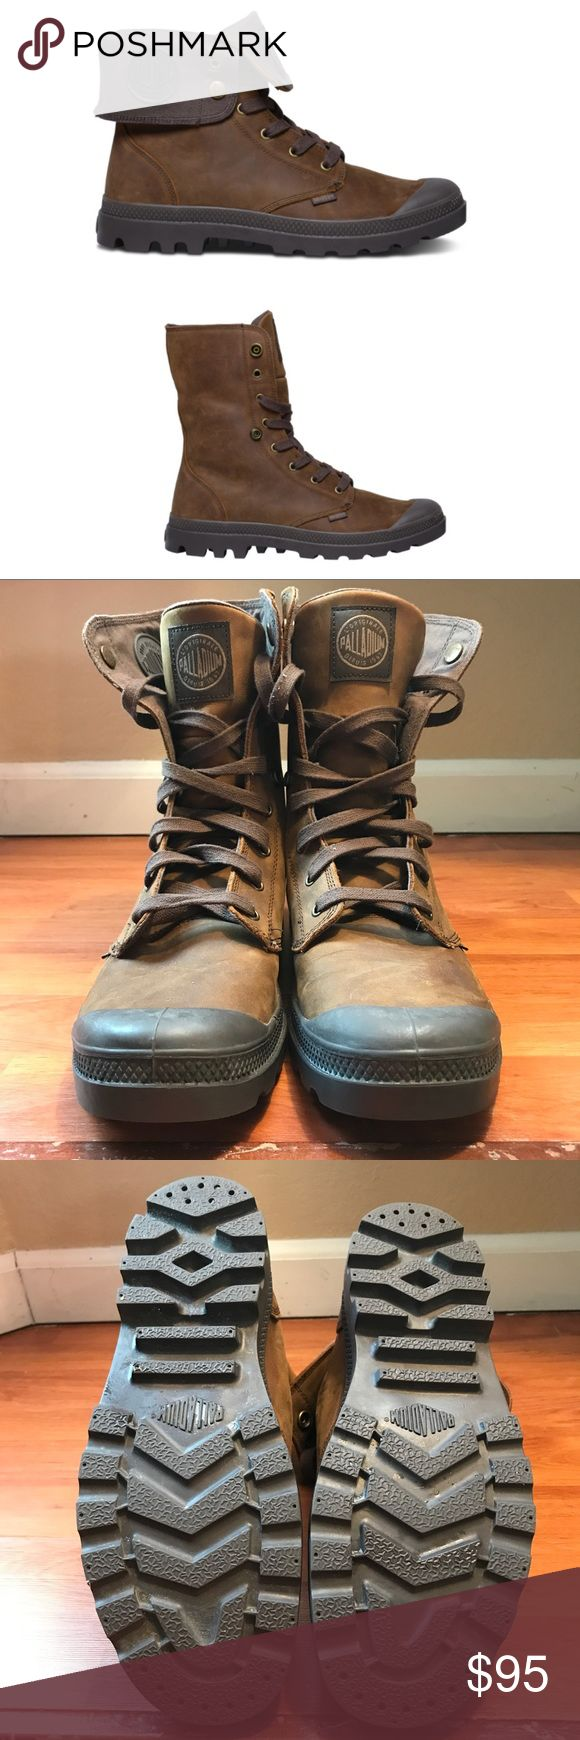 Palladium boots- Baggy Leather Waterproof Used, in great condition. Worn once. These are tough and very versatile boots. Price reflects any defects, item is sold as is. Feel free to ask any questions. Make a reasonable offer. Palladium Shoes Boots